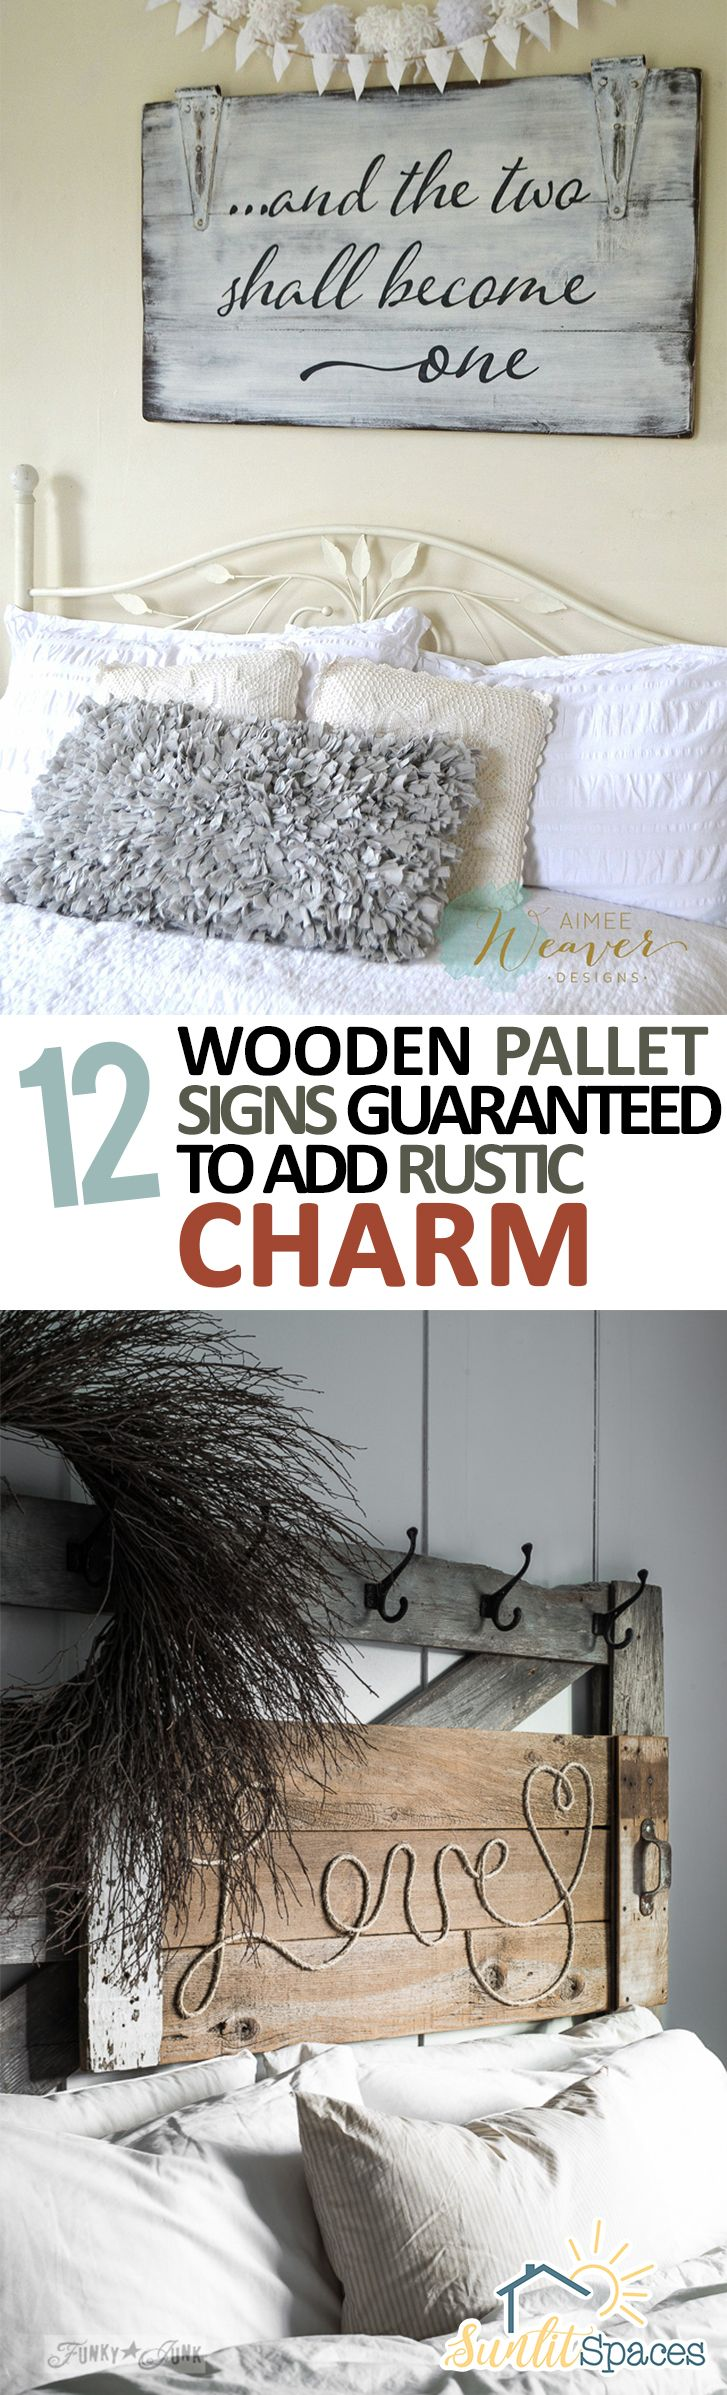 Wooden pallet craft projects - 12 Wooden Pallet Signs Guaranteed To Add Rustic Charm